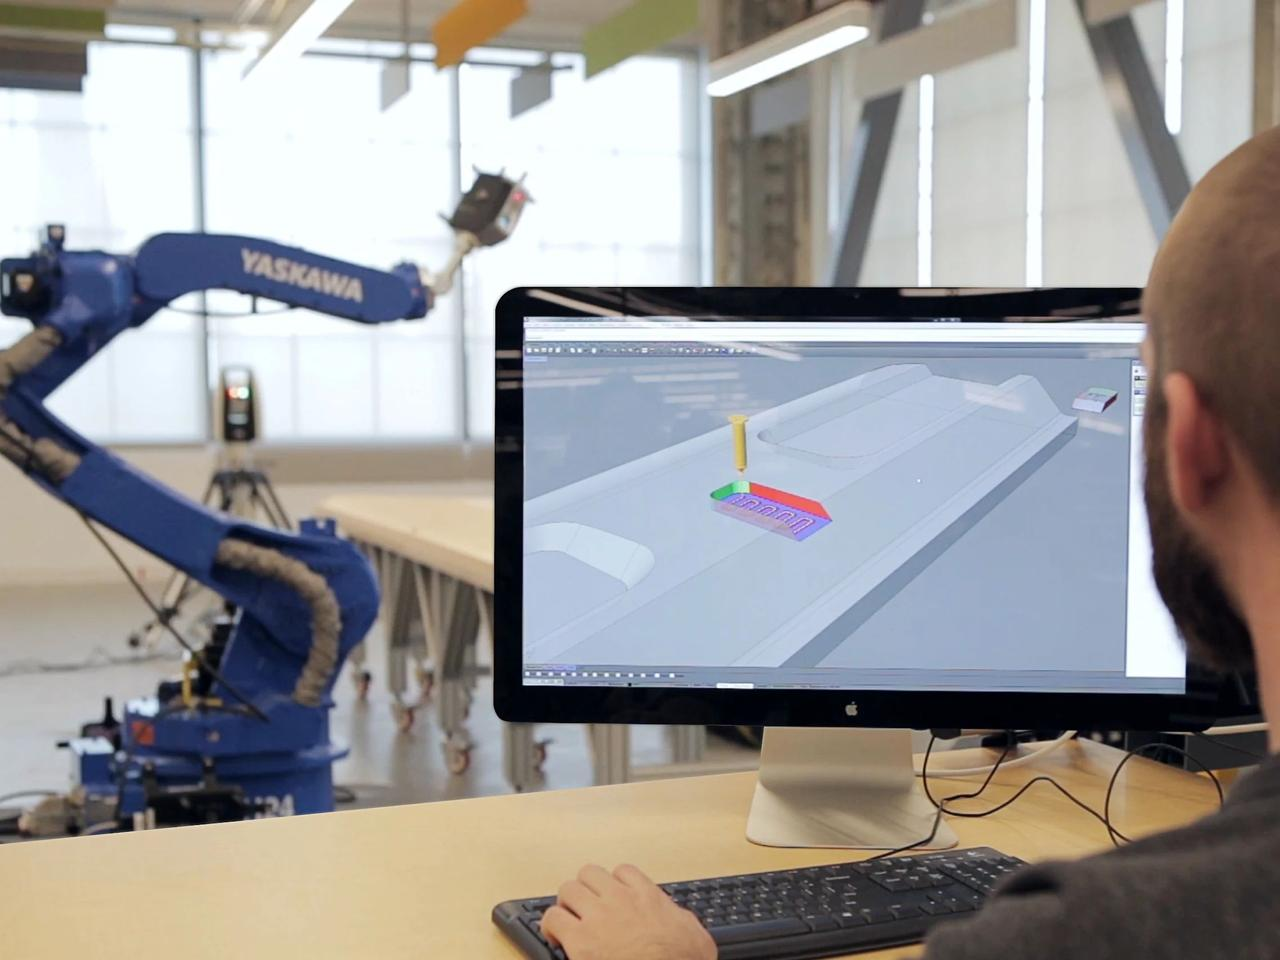 """The Intrinsic team has spent the last five and a half years developing and testing software tools to help make industrial robots """"easier to use, less costly and more flexible"""""""